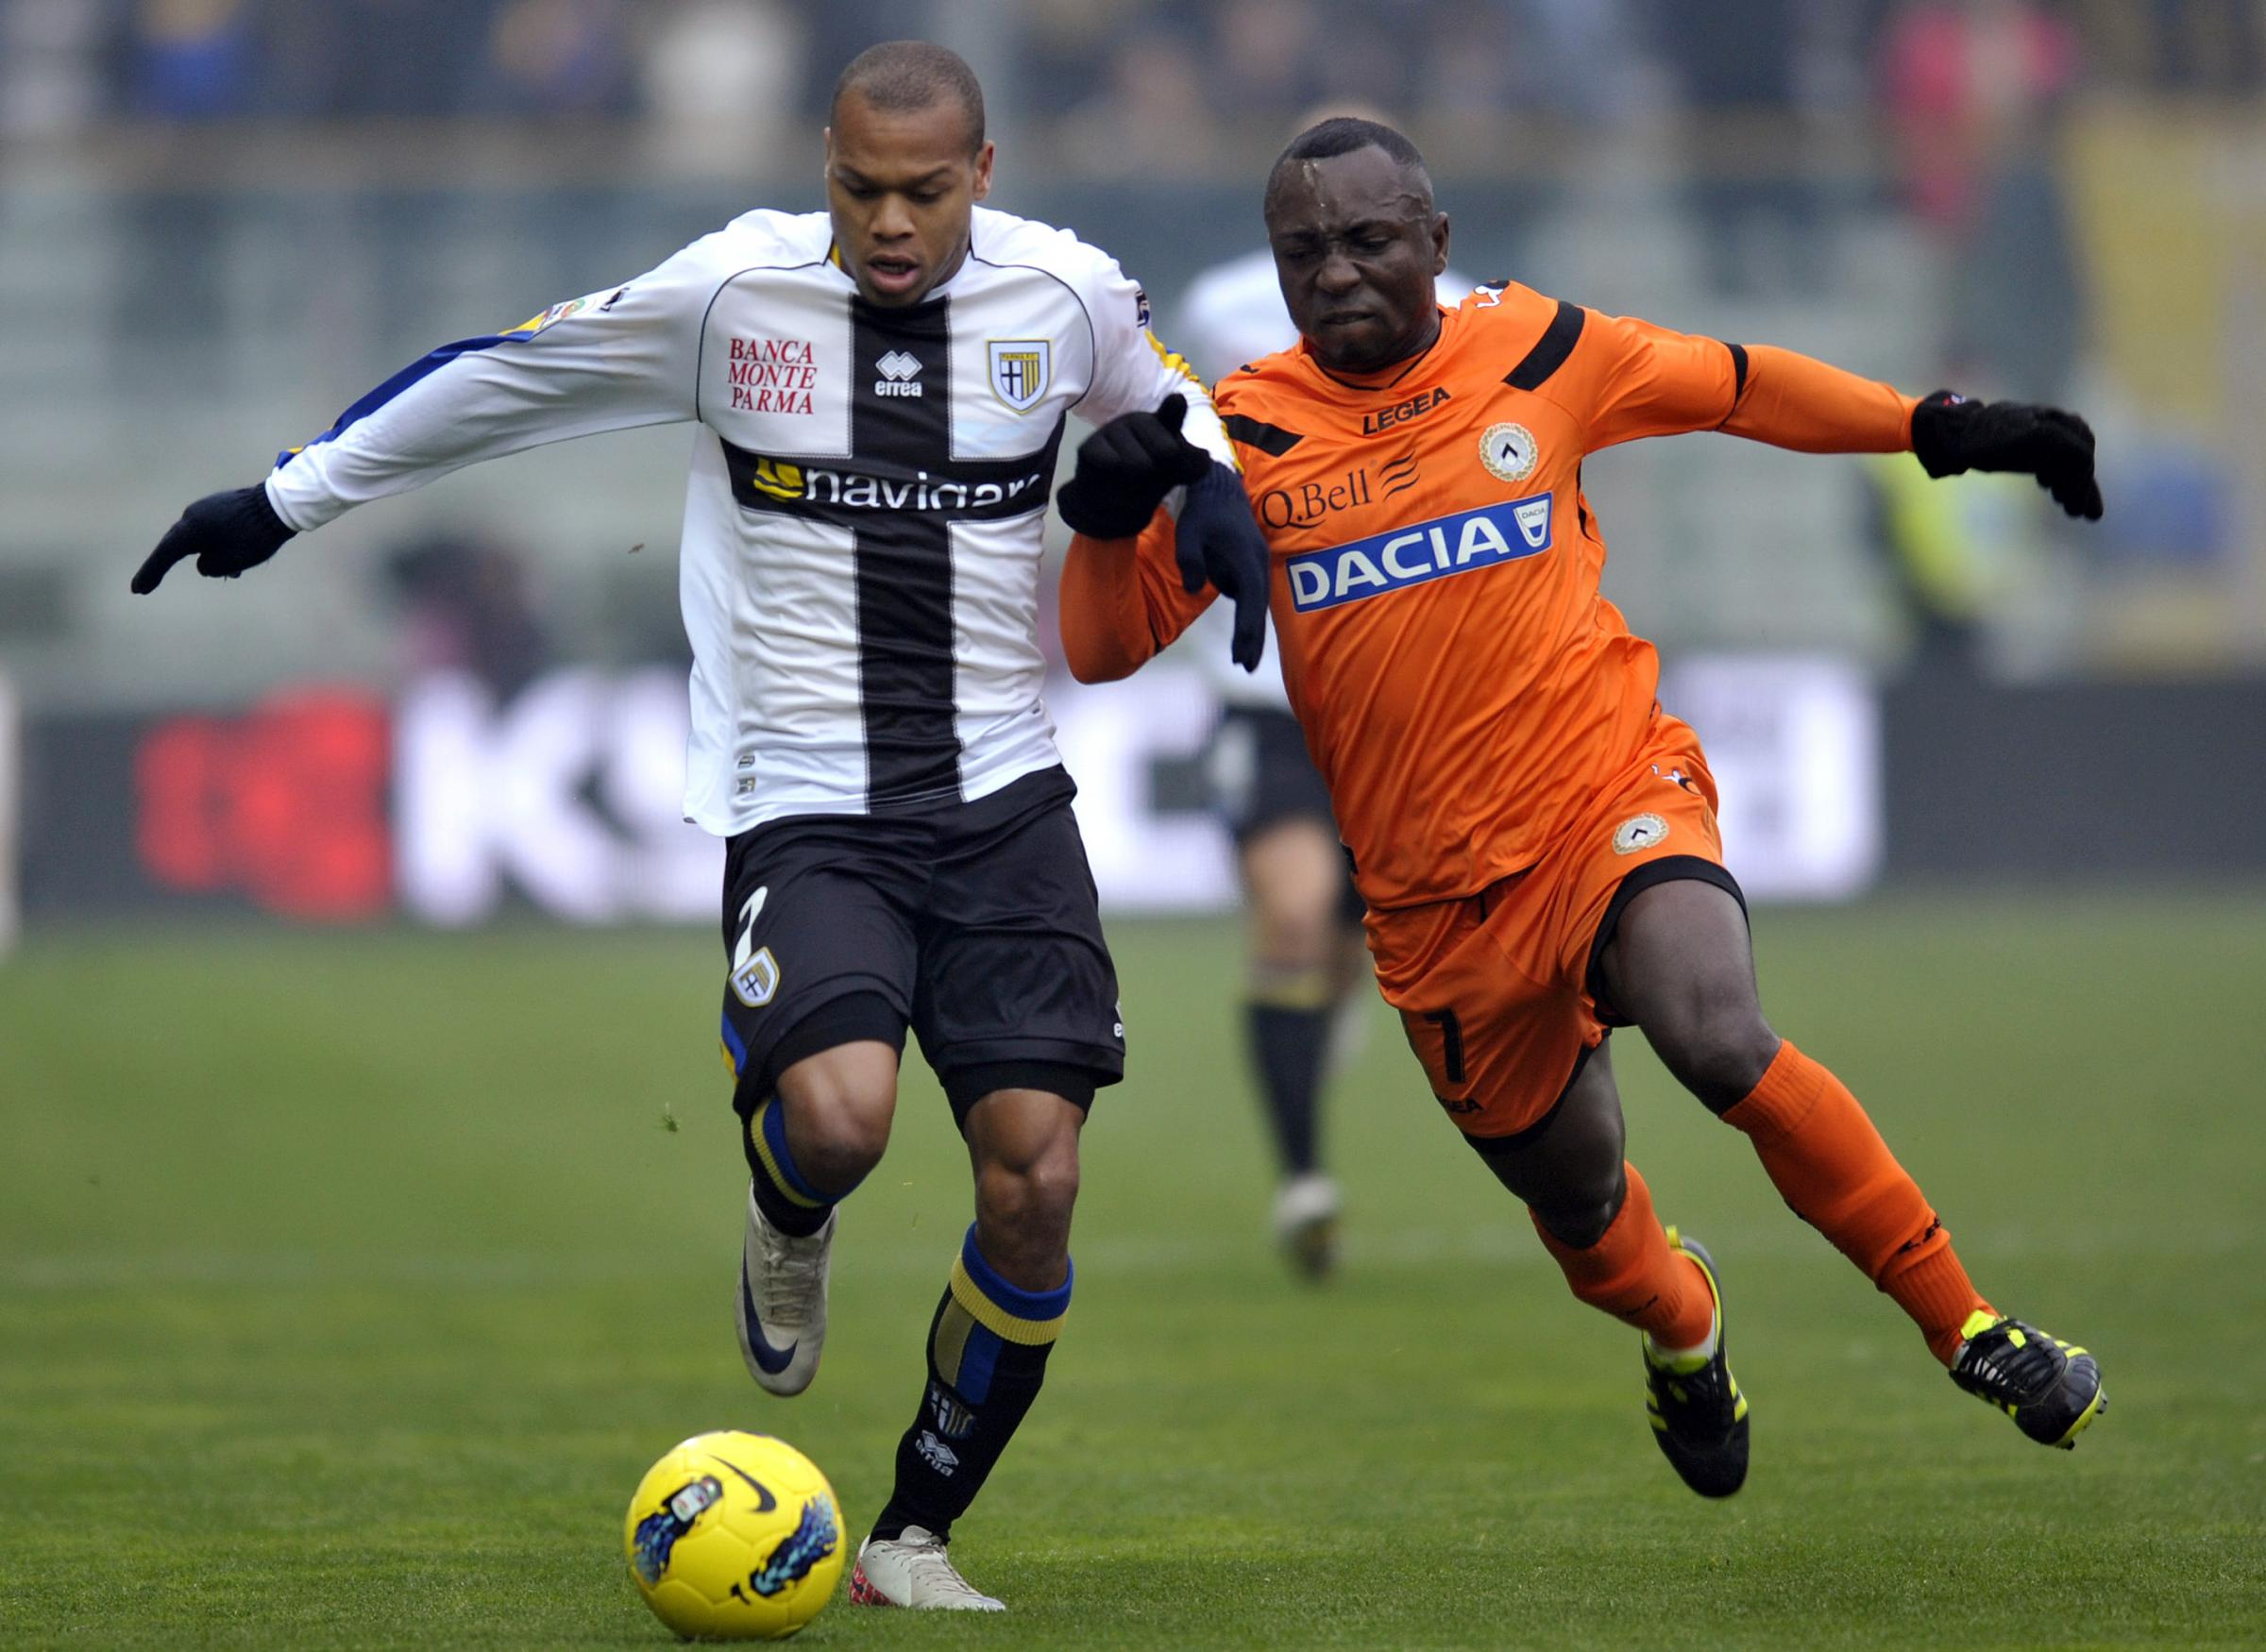 Milan likely to sign Biabiany